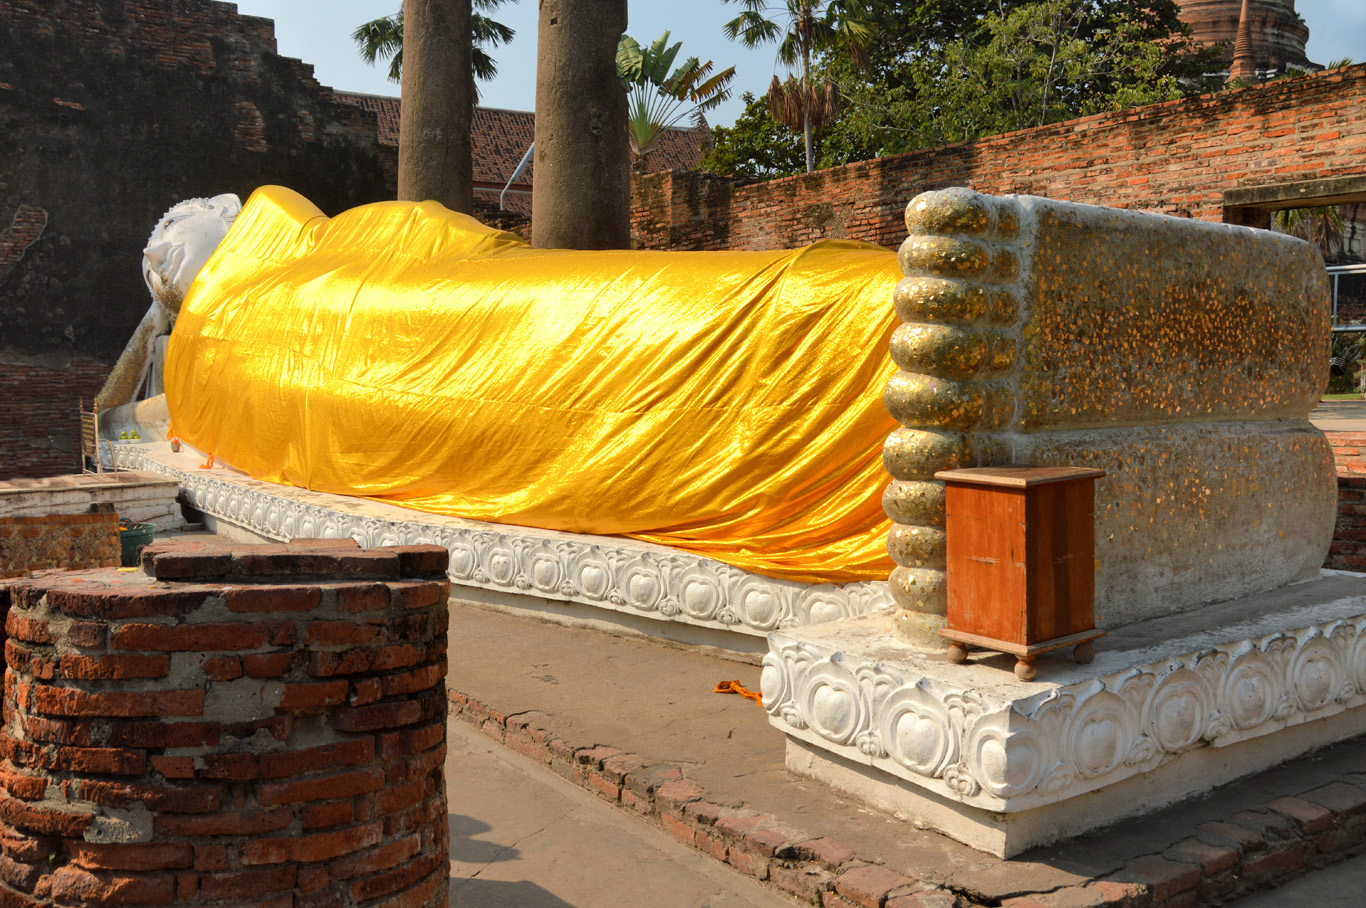 One of the two Reclining Buddha Statues